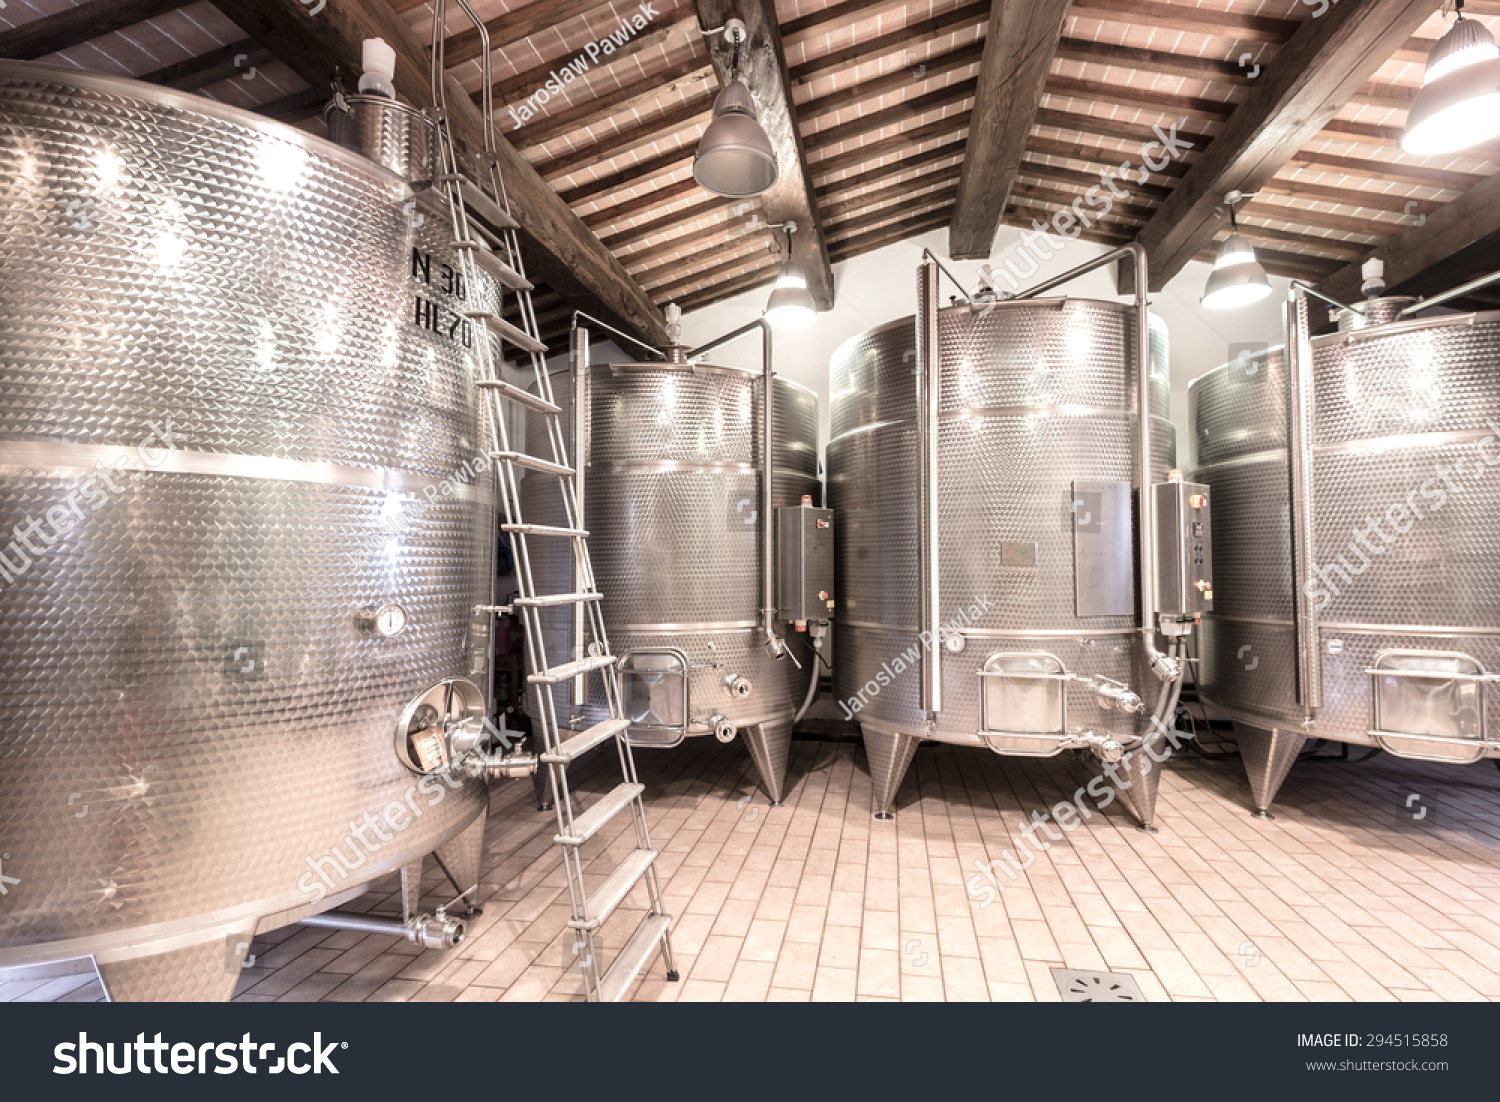 stock-photo-aluminum-containers-for-maturing-wine-in-a-winery-294515858.jpg